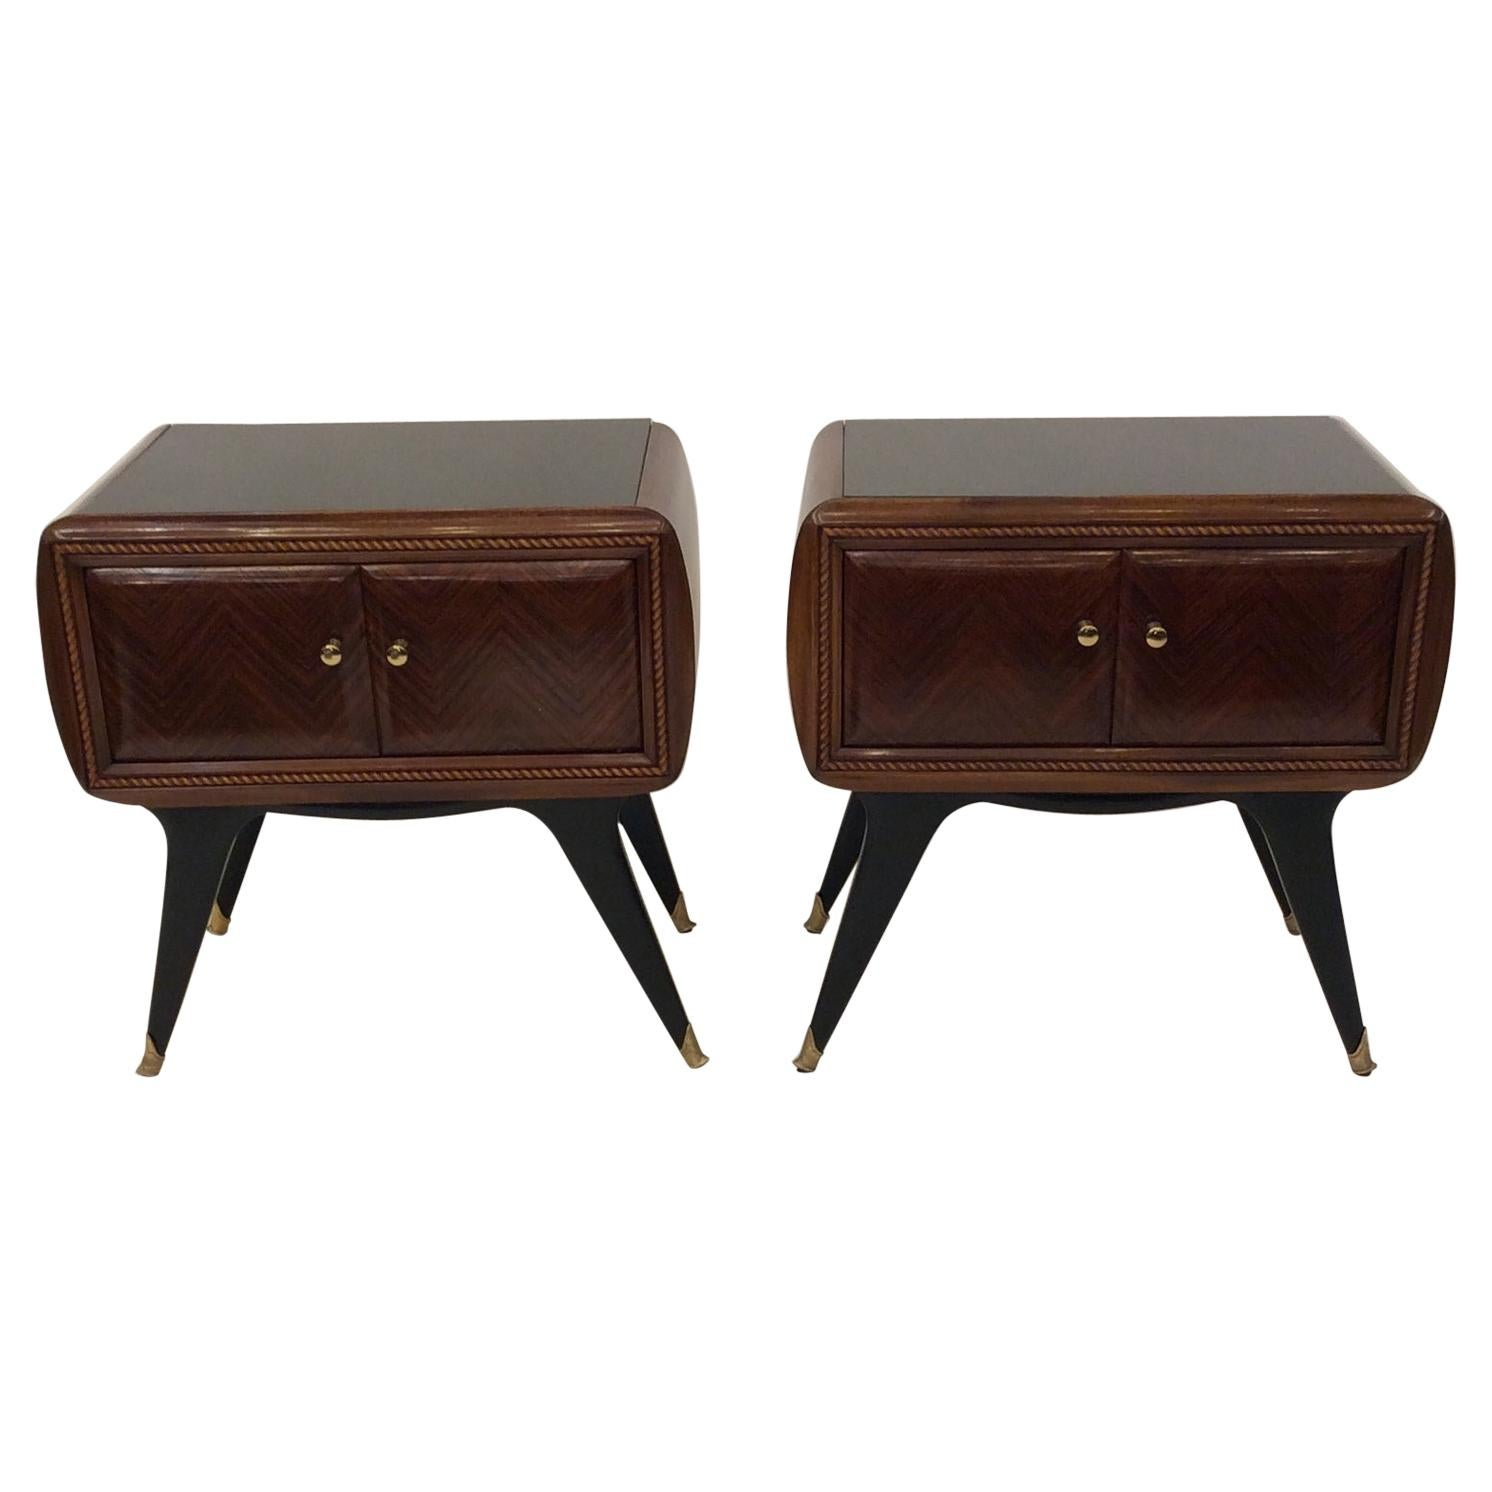 Pair of Italian Side Chest Nightstands Attributed Gio Ponti, circa 1950